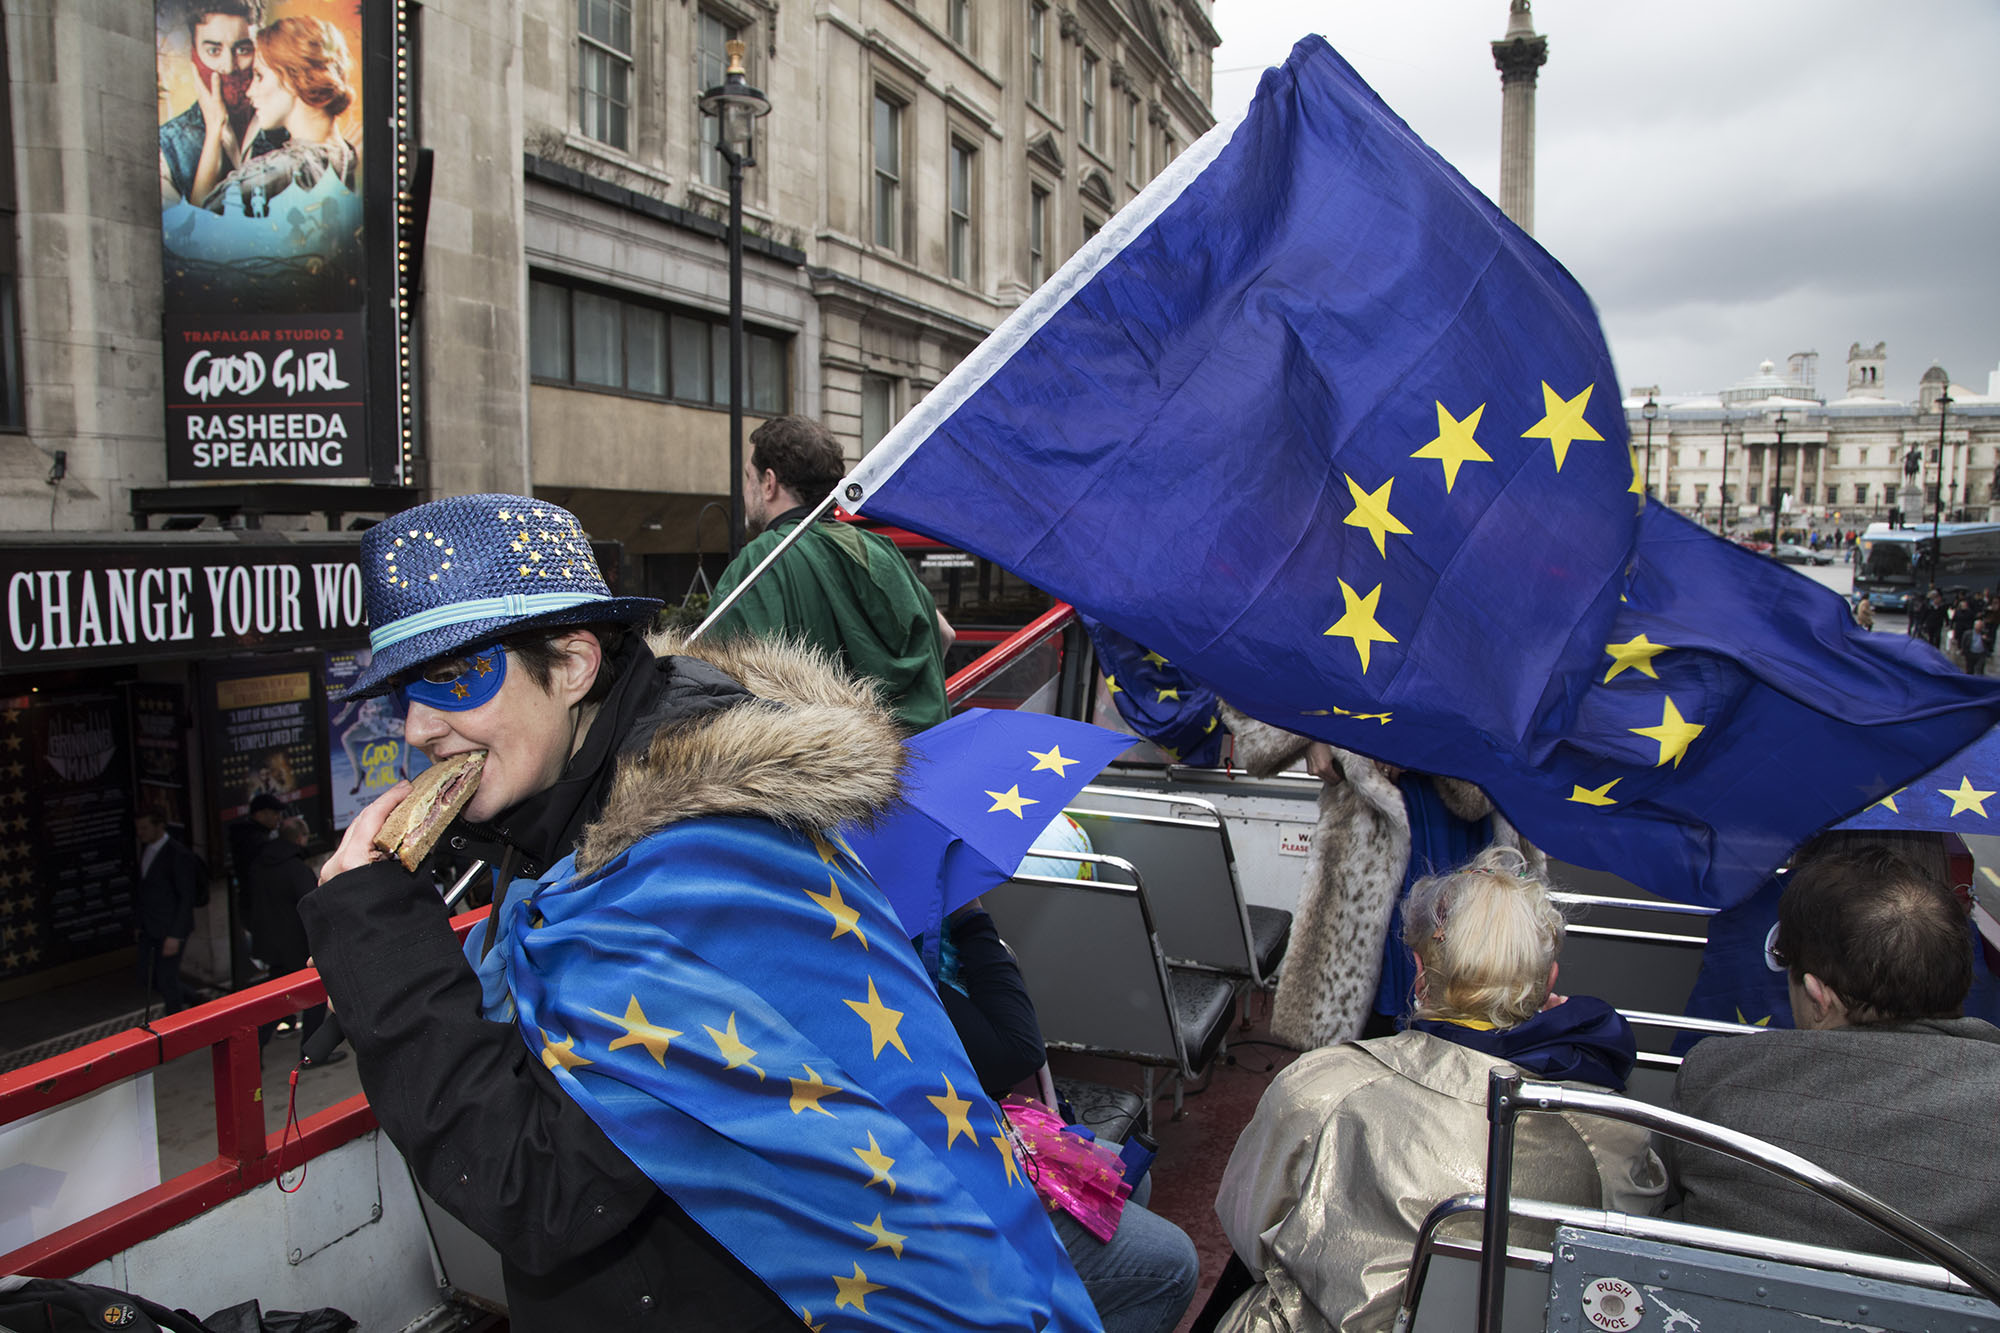 With one year to go until Brexit, anti-Brexit demonstrators protest aboard an EU superhero Brexit battle bus.